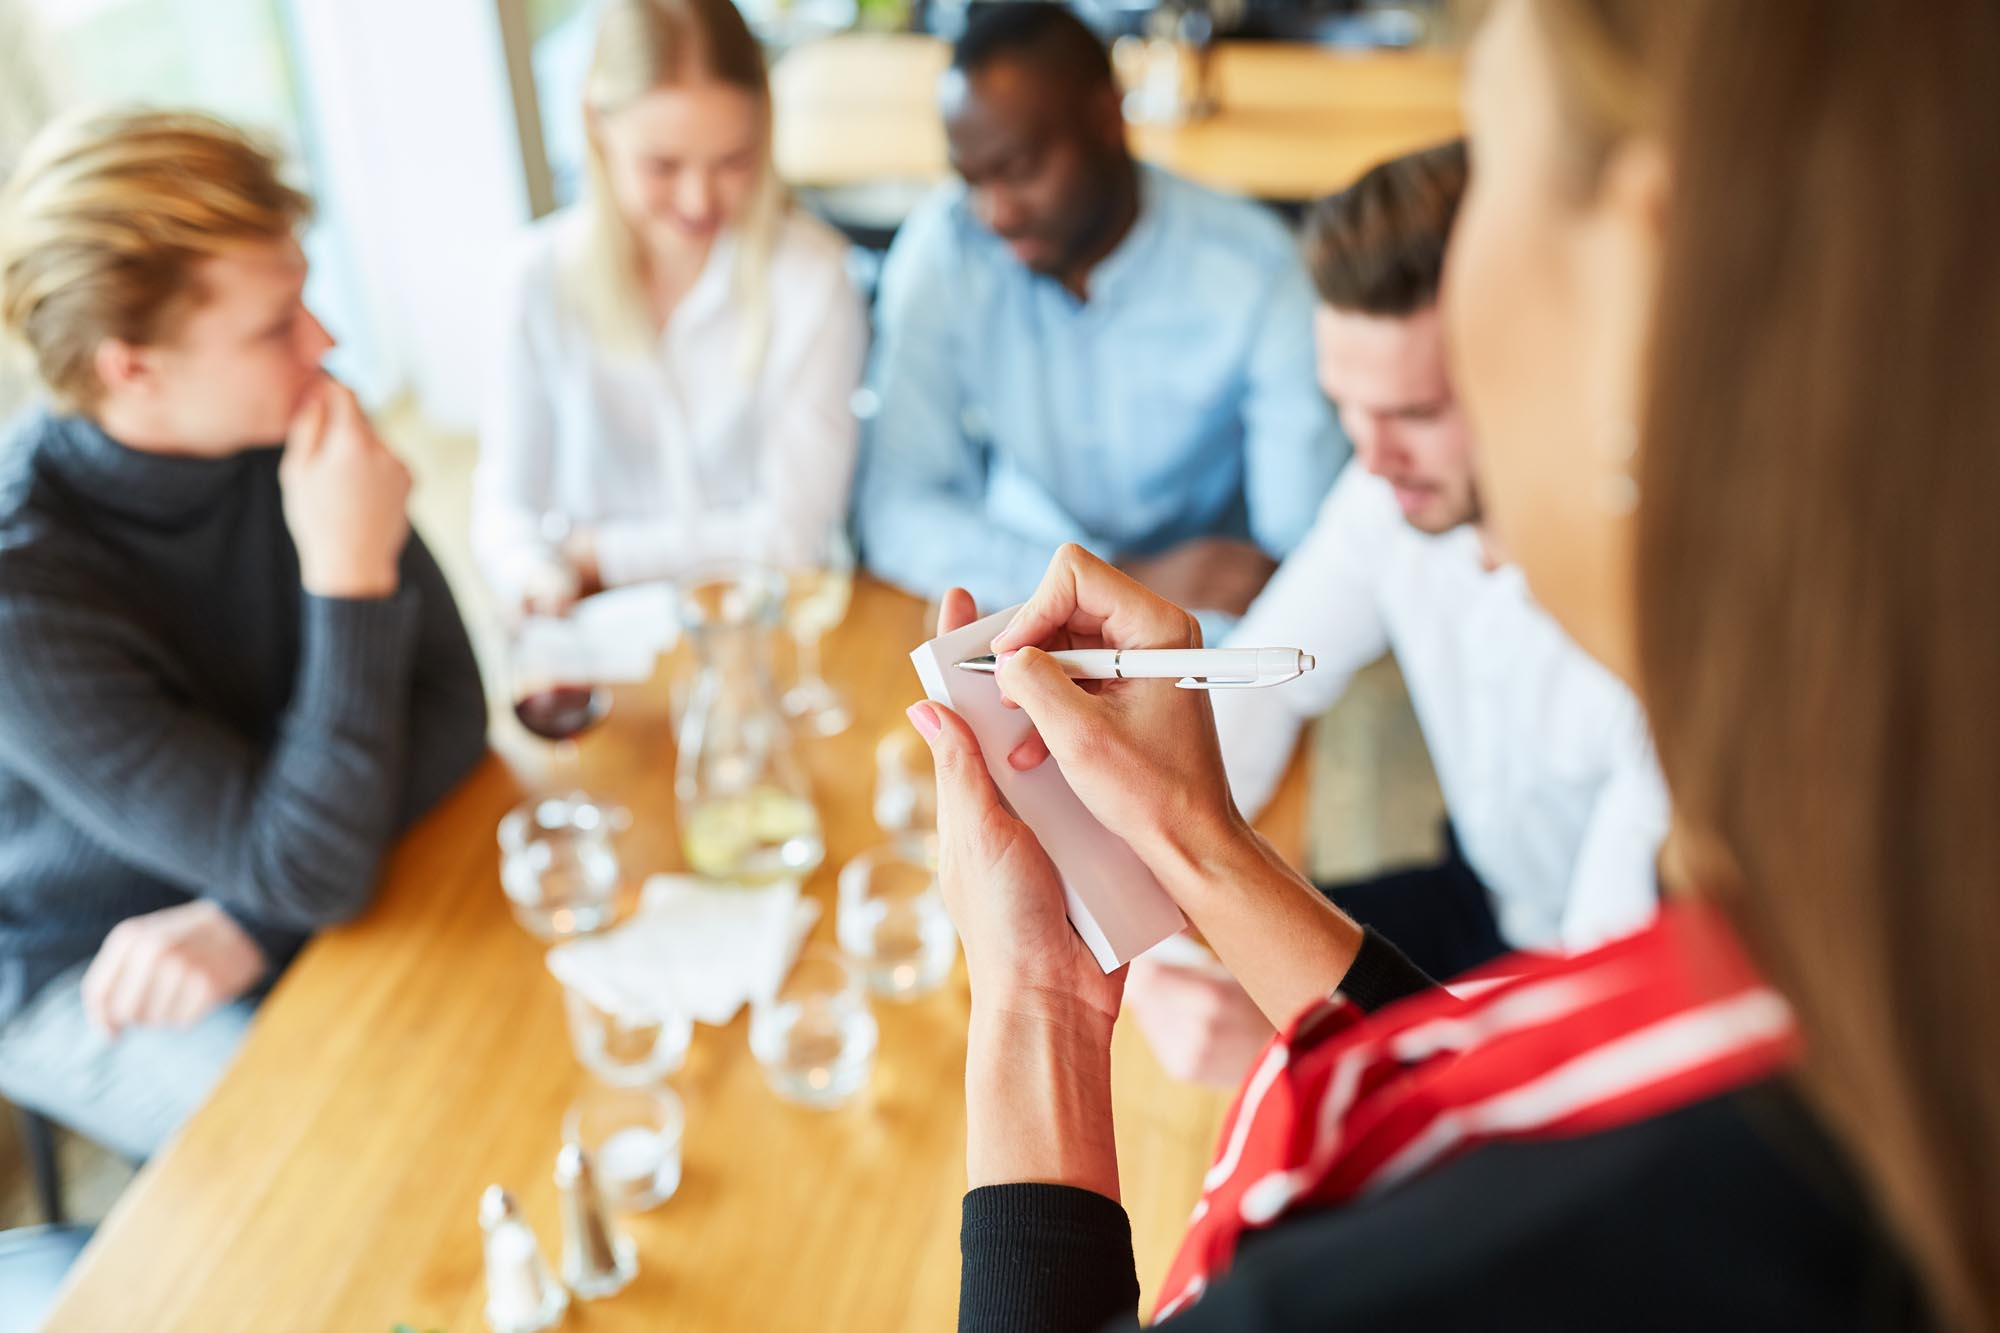 Types of Selling in a Restaurant